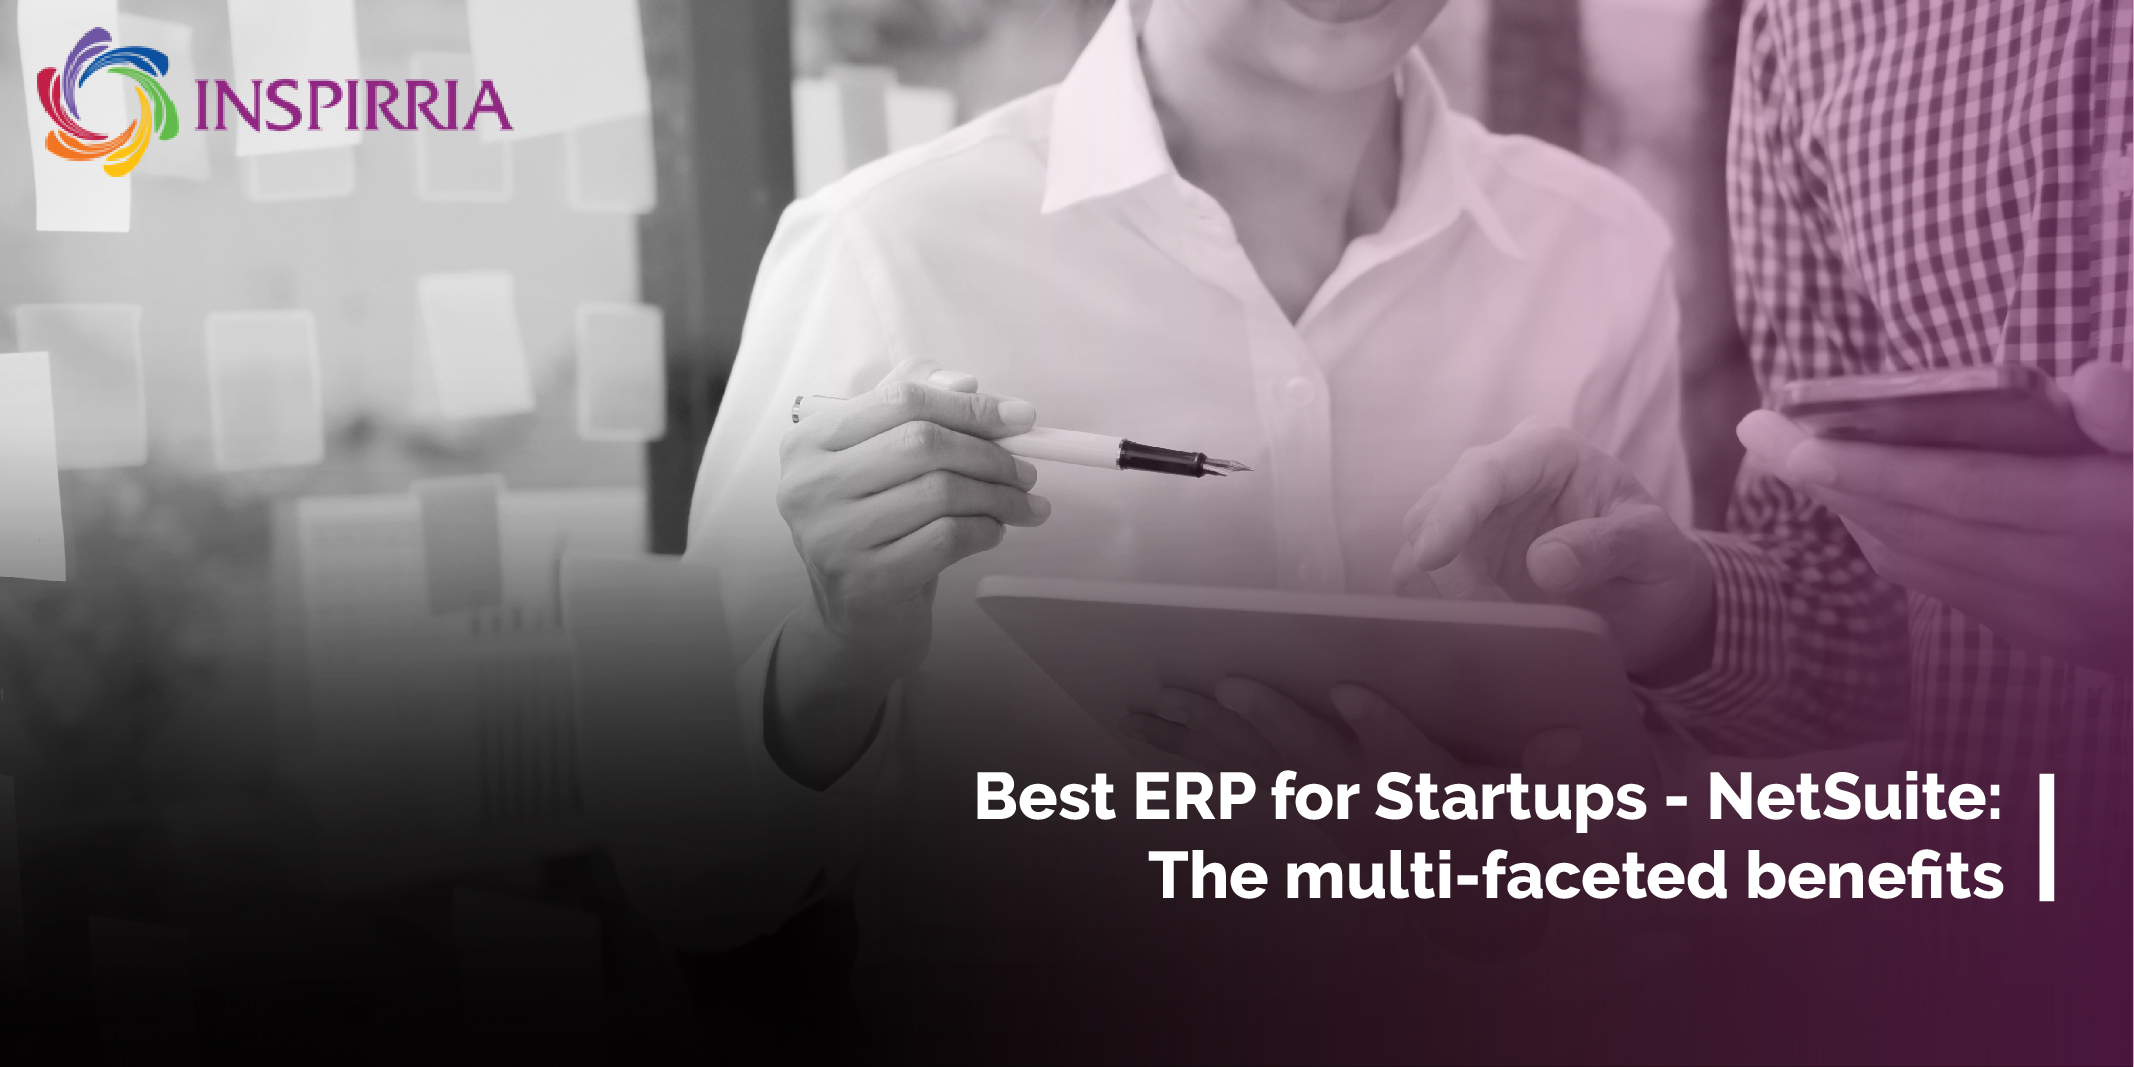 NetSuite Cloud ERP for Startups